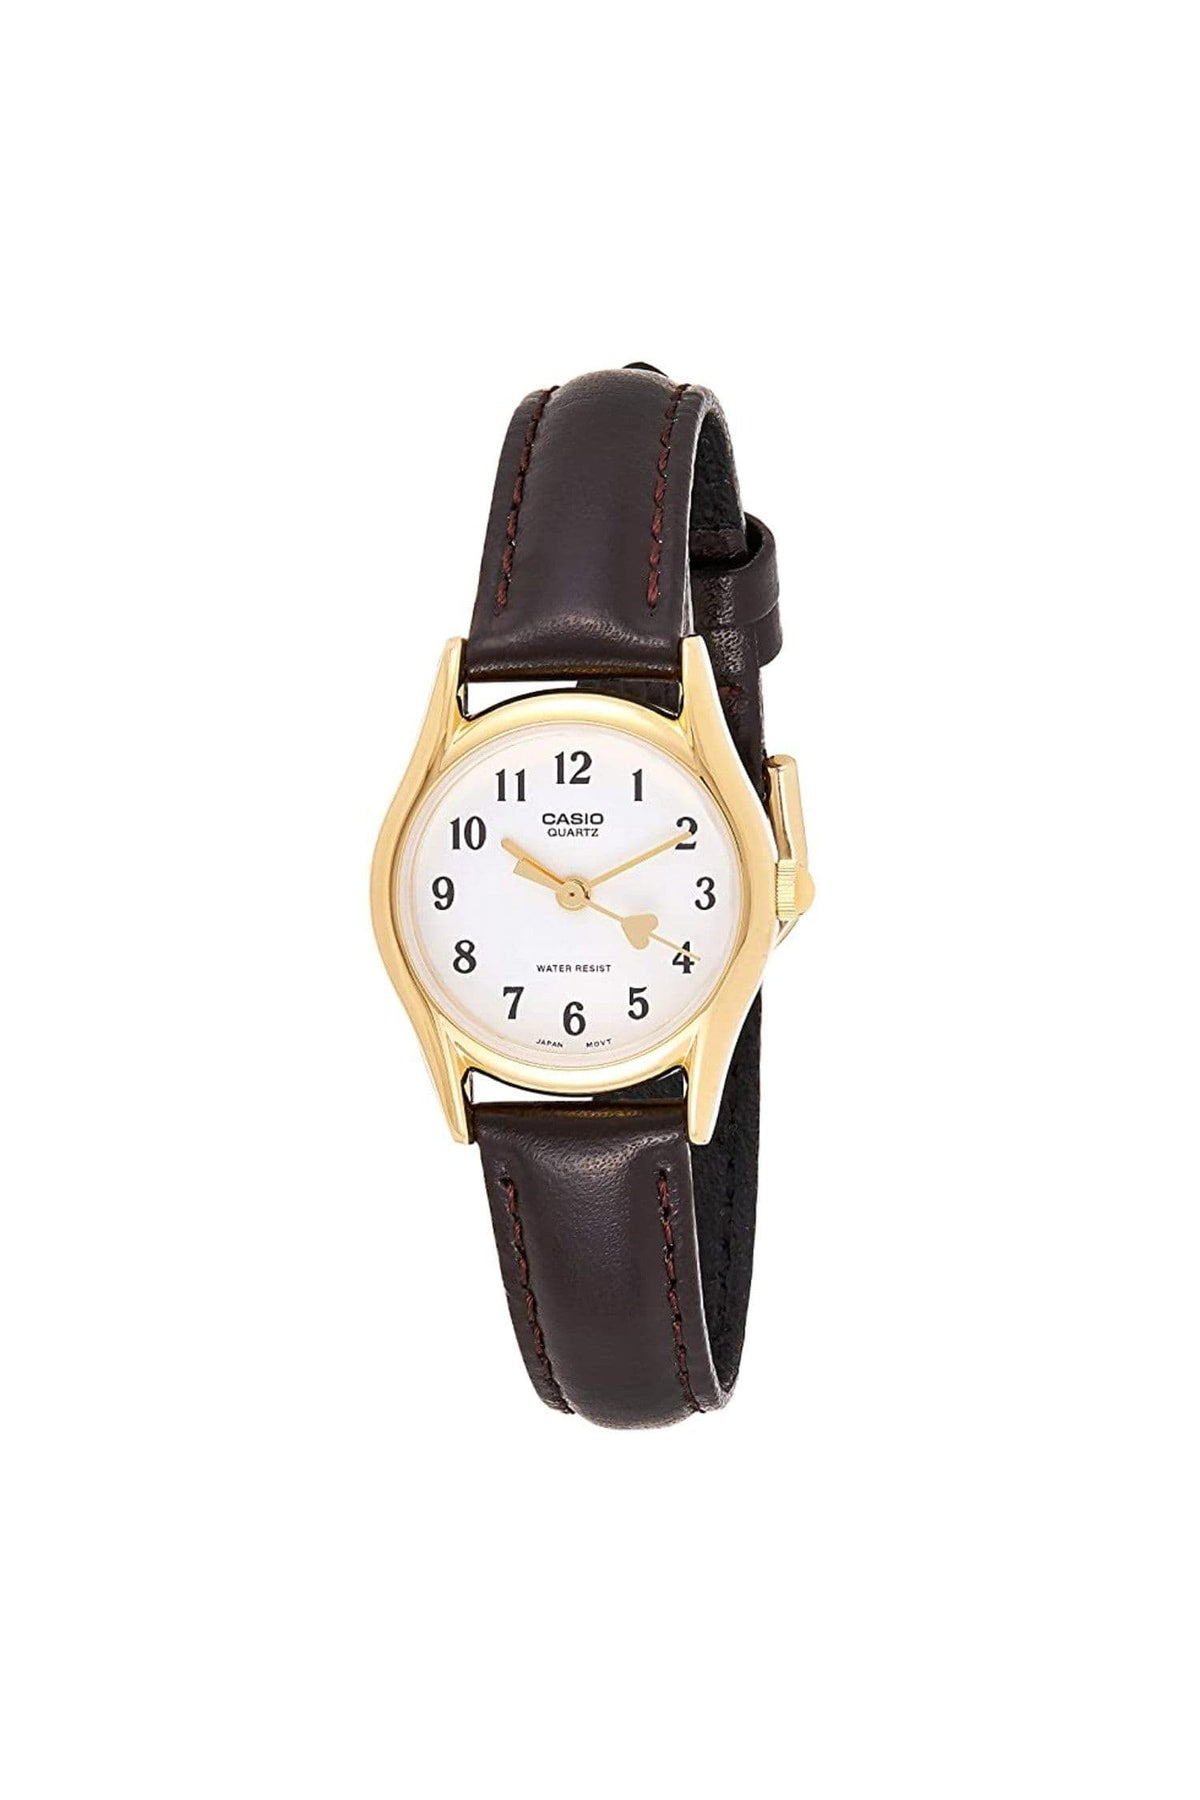 WCHA1049 - Casio Women's Heart Leather Watch LTP-1094Q-7B5